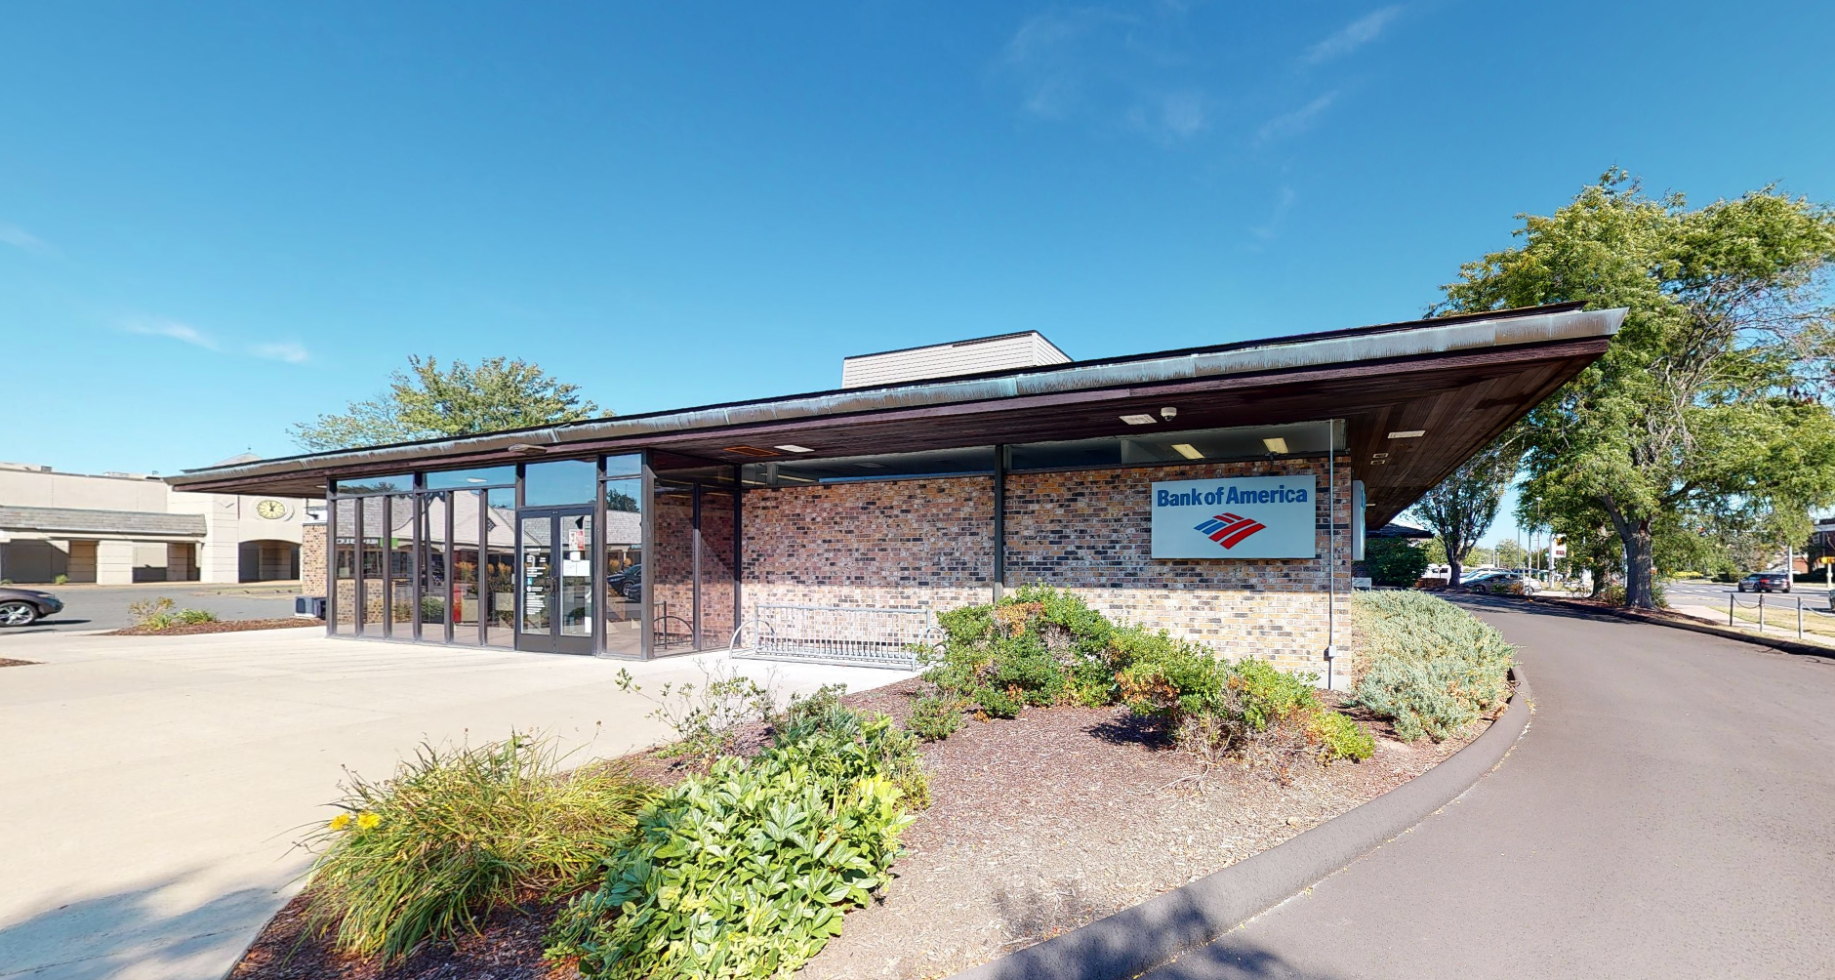 Bank of America financial center with drive-thru ATM   836 Park Ave, Bloomfield, CT 06002